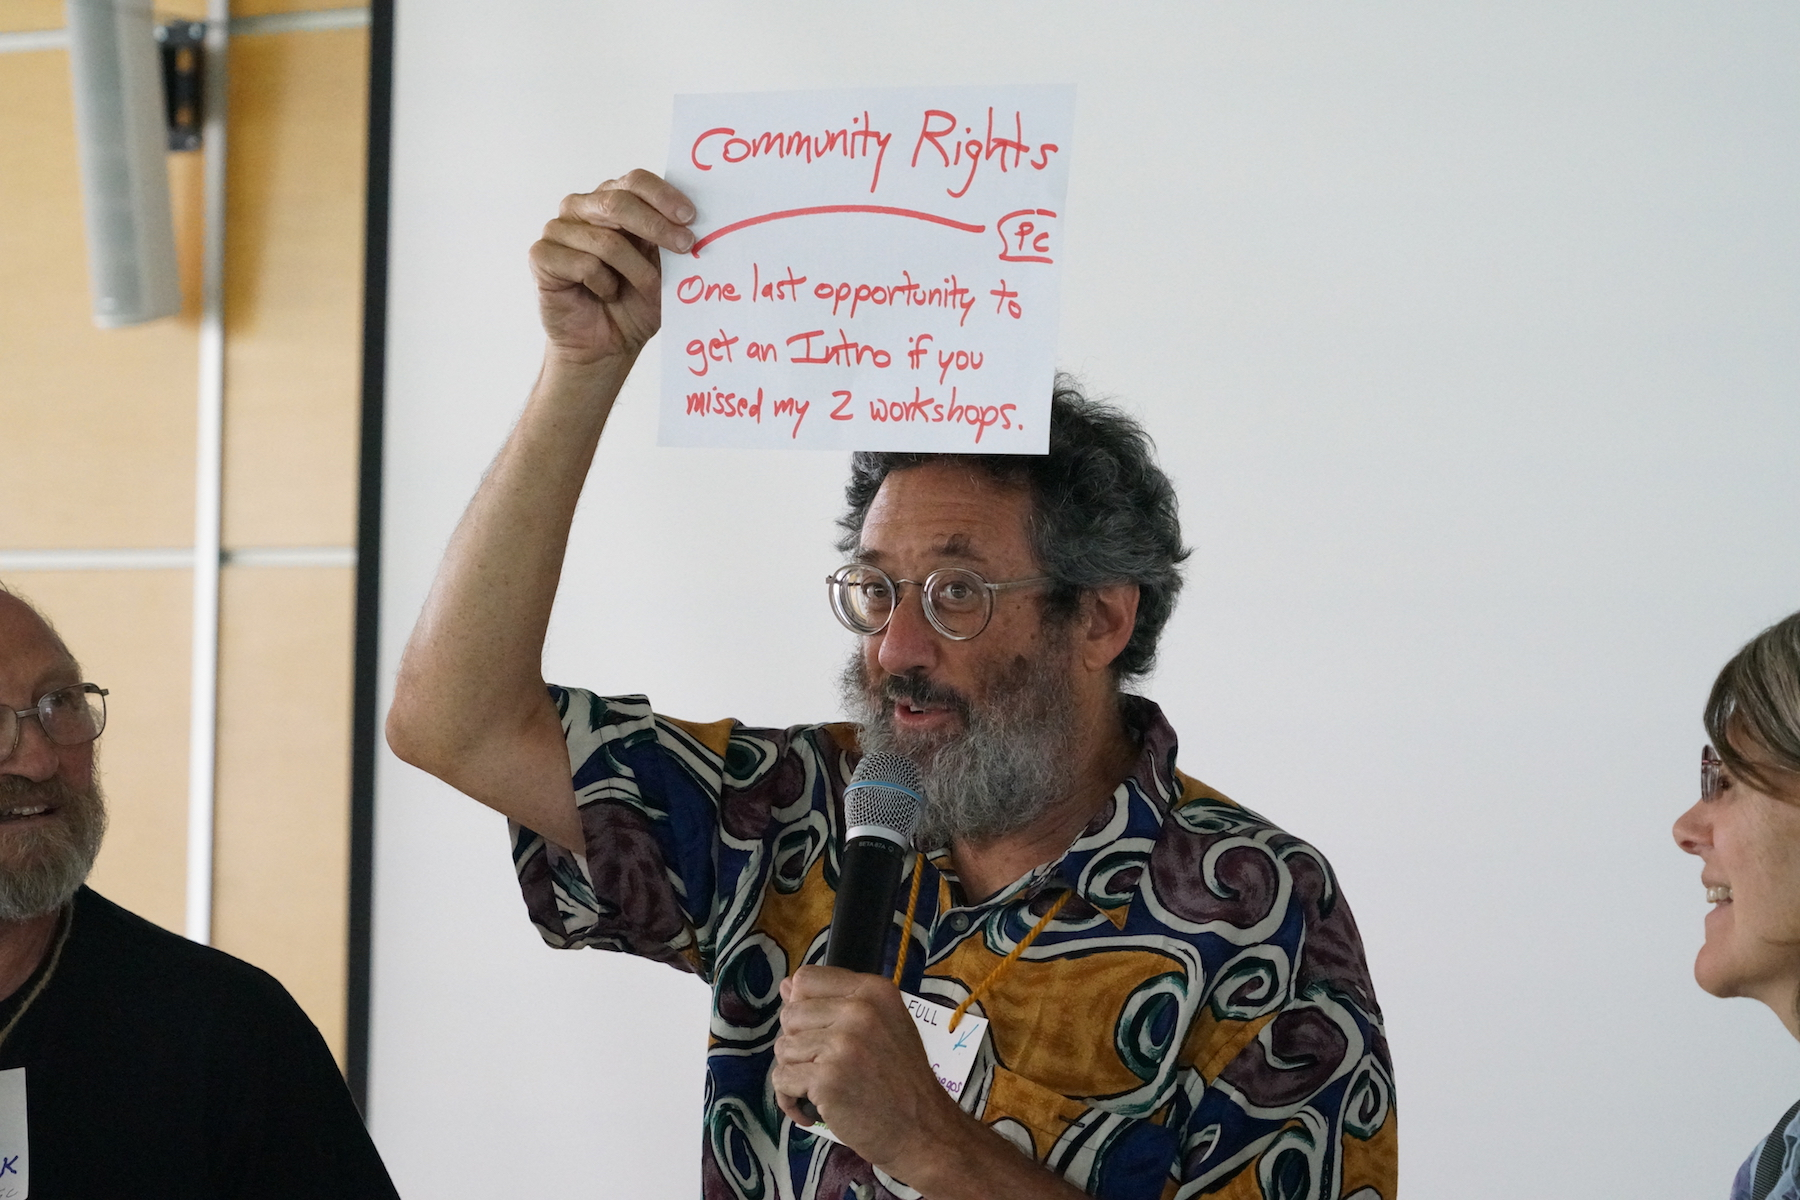 After teaching an intensive and a workshop about Community Rights, Paul Cienfuegos seizes one last opportunity to talk about the cause that's most dear to his heart. Photo by Teresa Konechne.